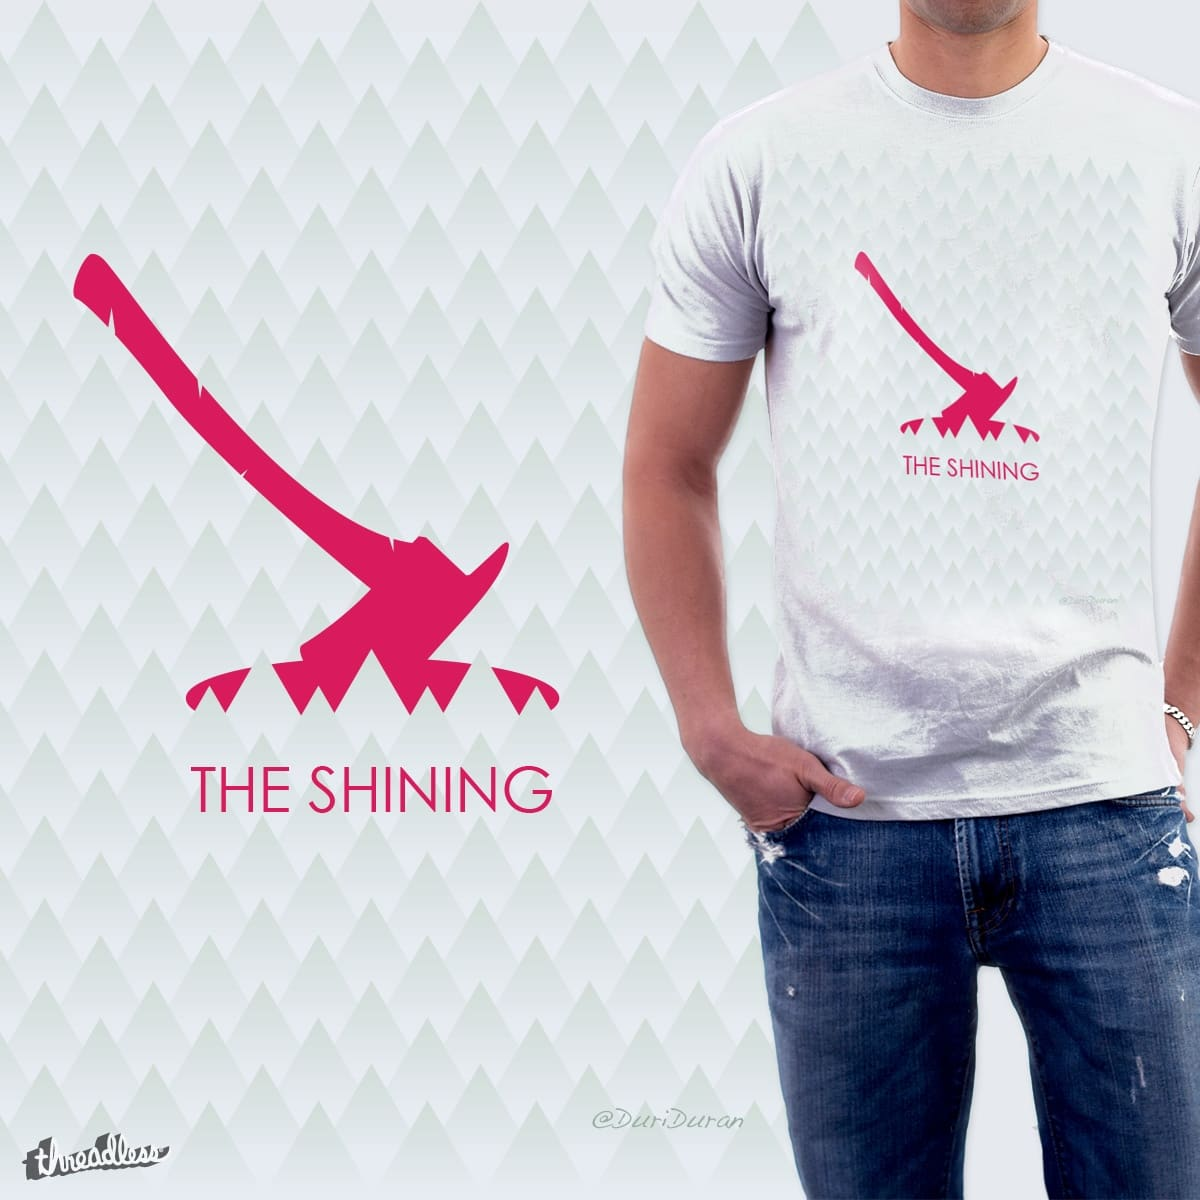 The Shining by duriduran on Threadless